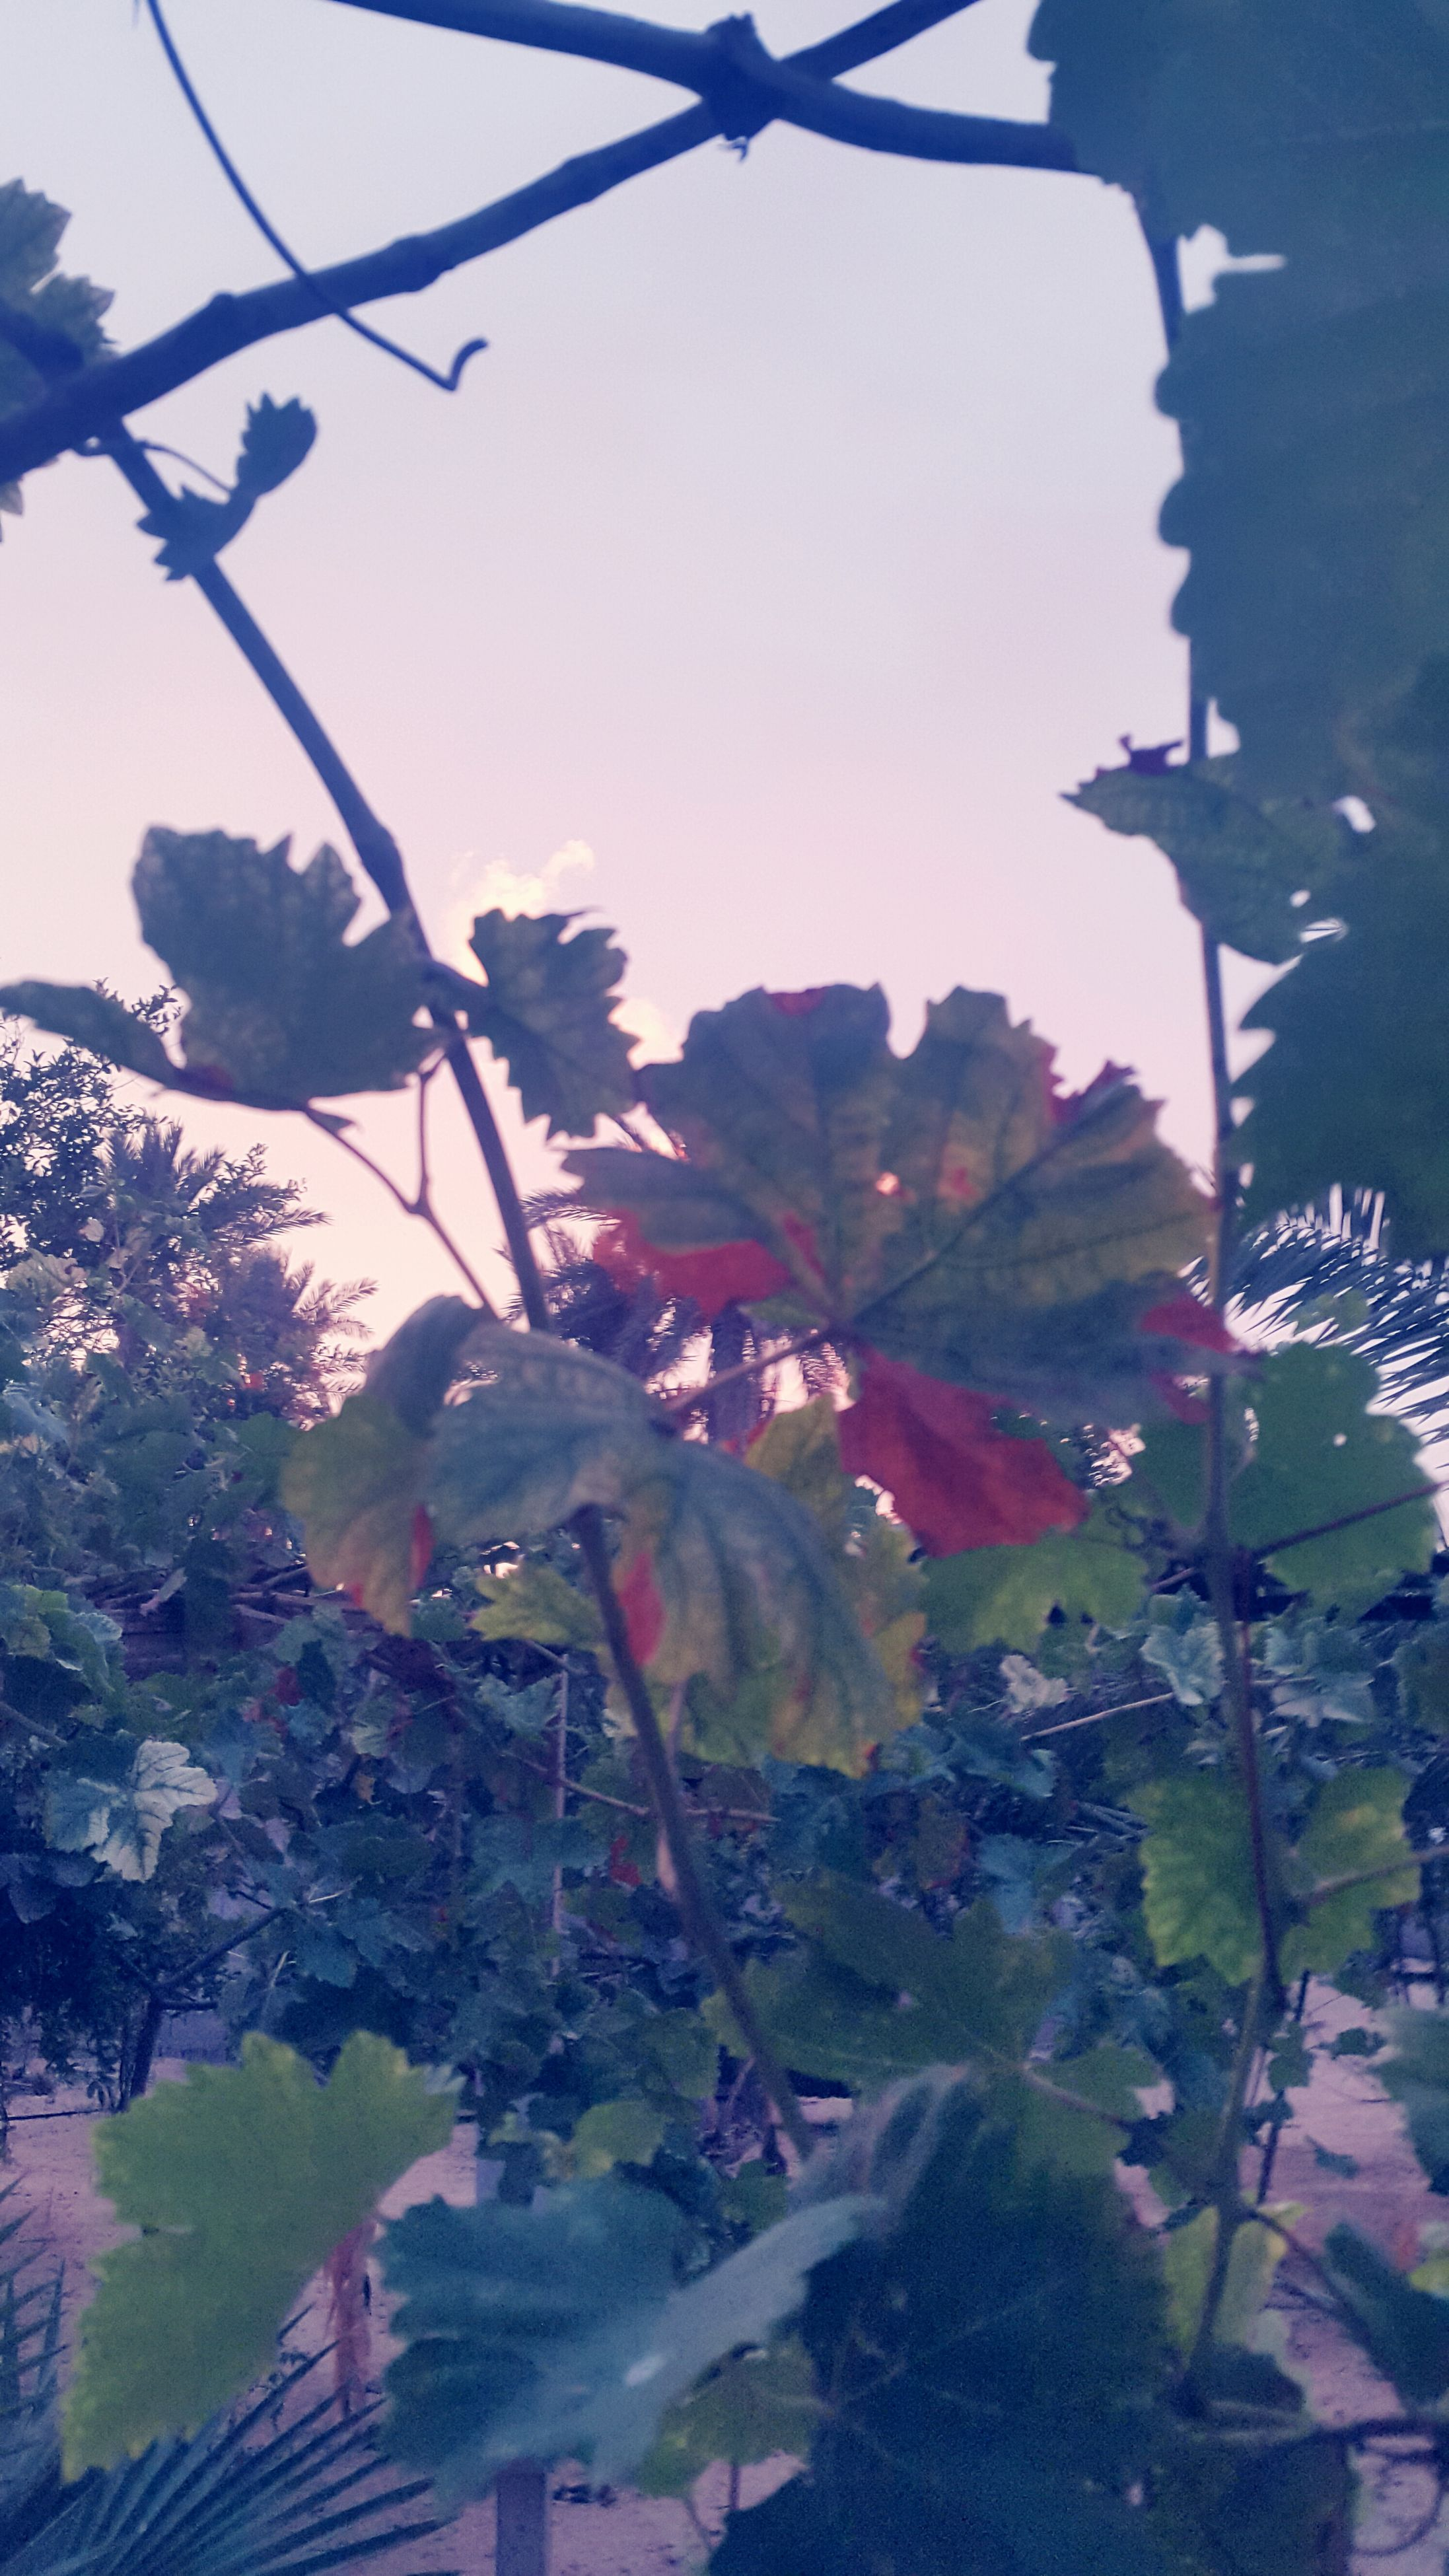 growth, leaf, flower, low angle view, plant, nature, clear sky, sunlight, tree, fragility, beauty in nature, sky, freshness, day, outdoors, no people, growing, built structure, close-up, branch